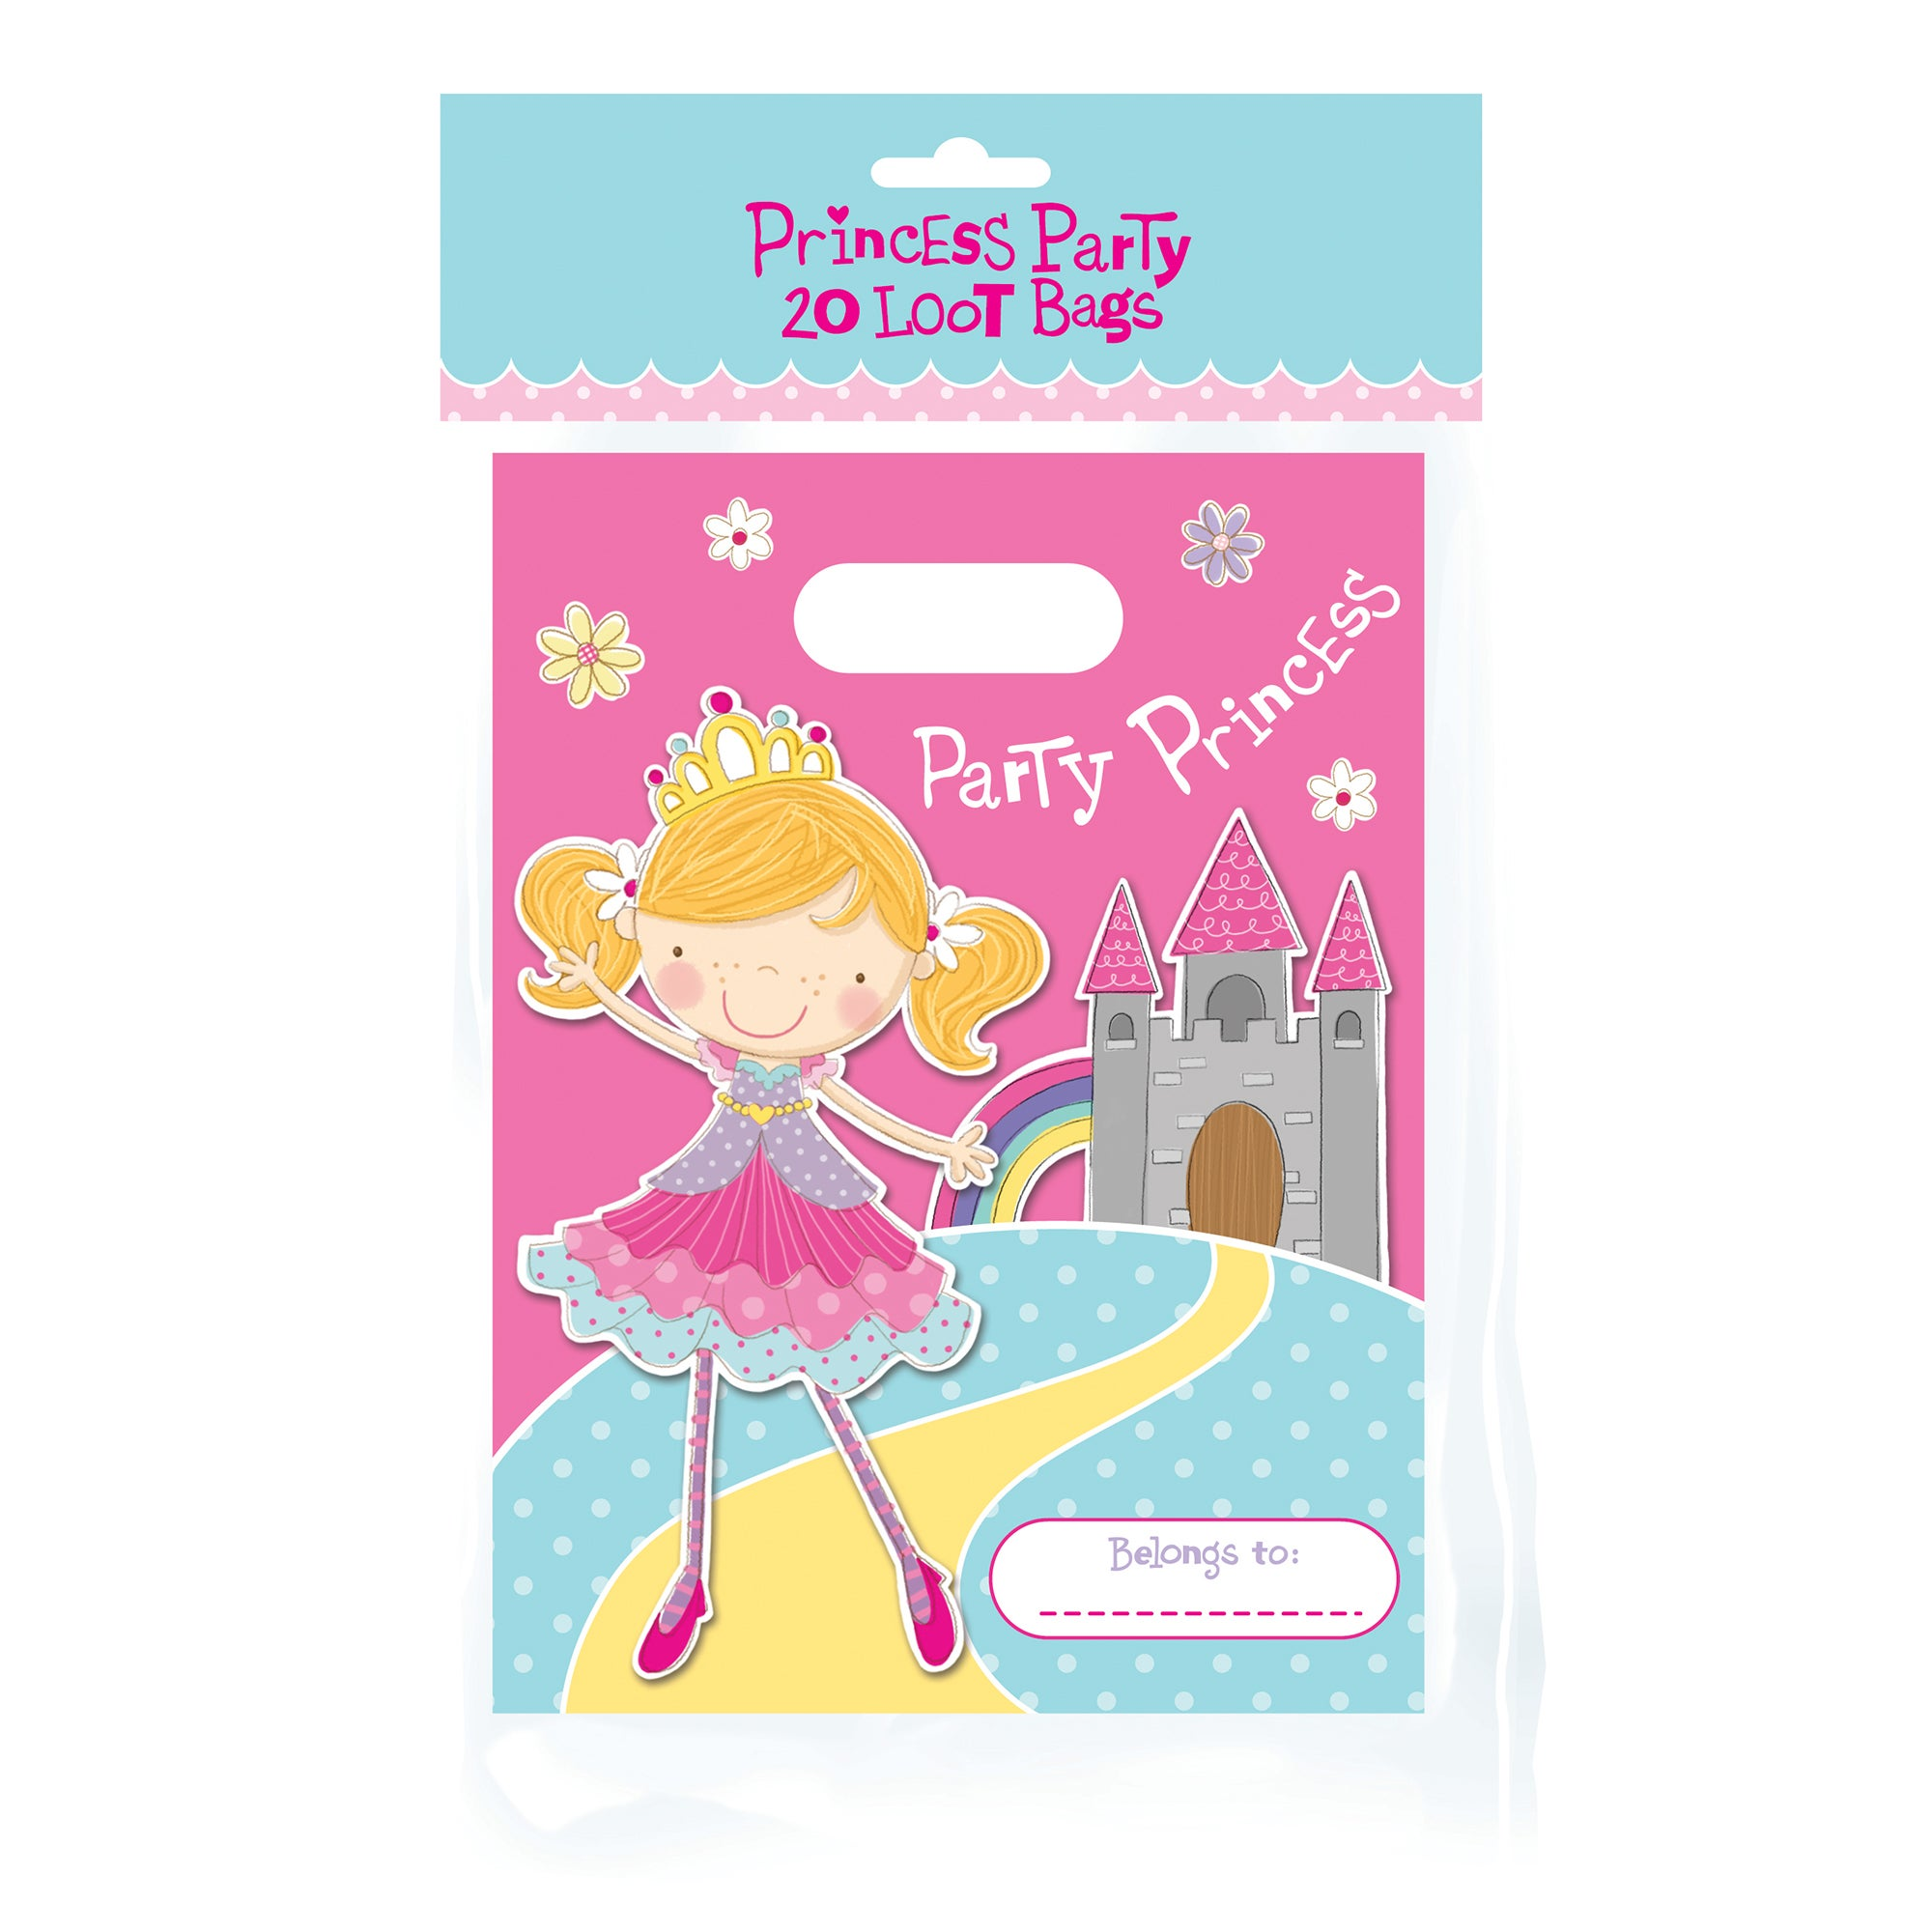 Princess Party Pack of 20 Loot Bags